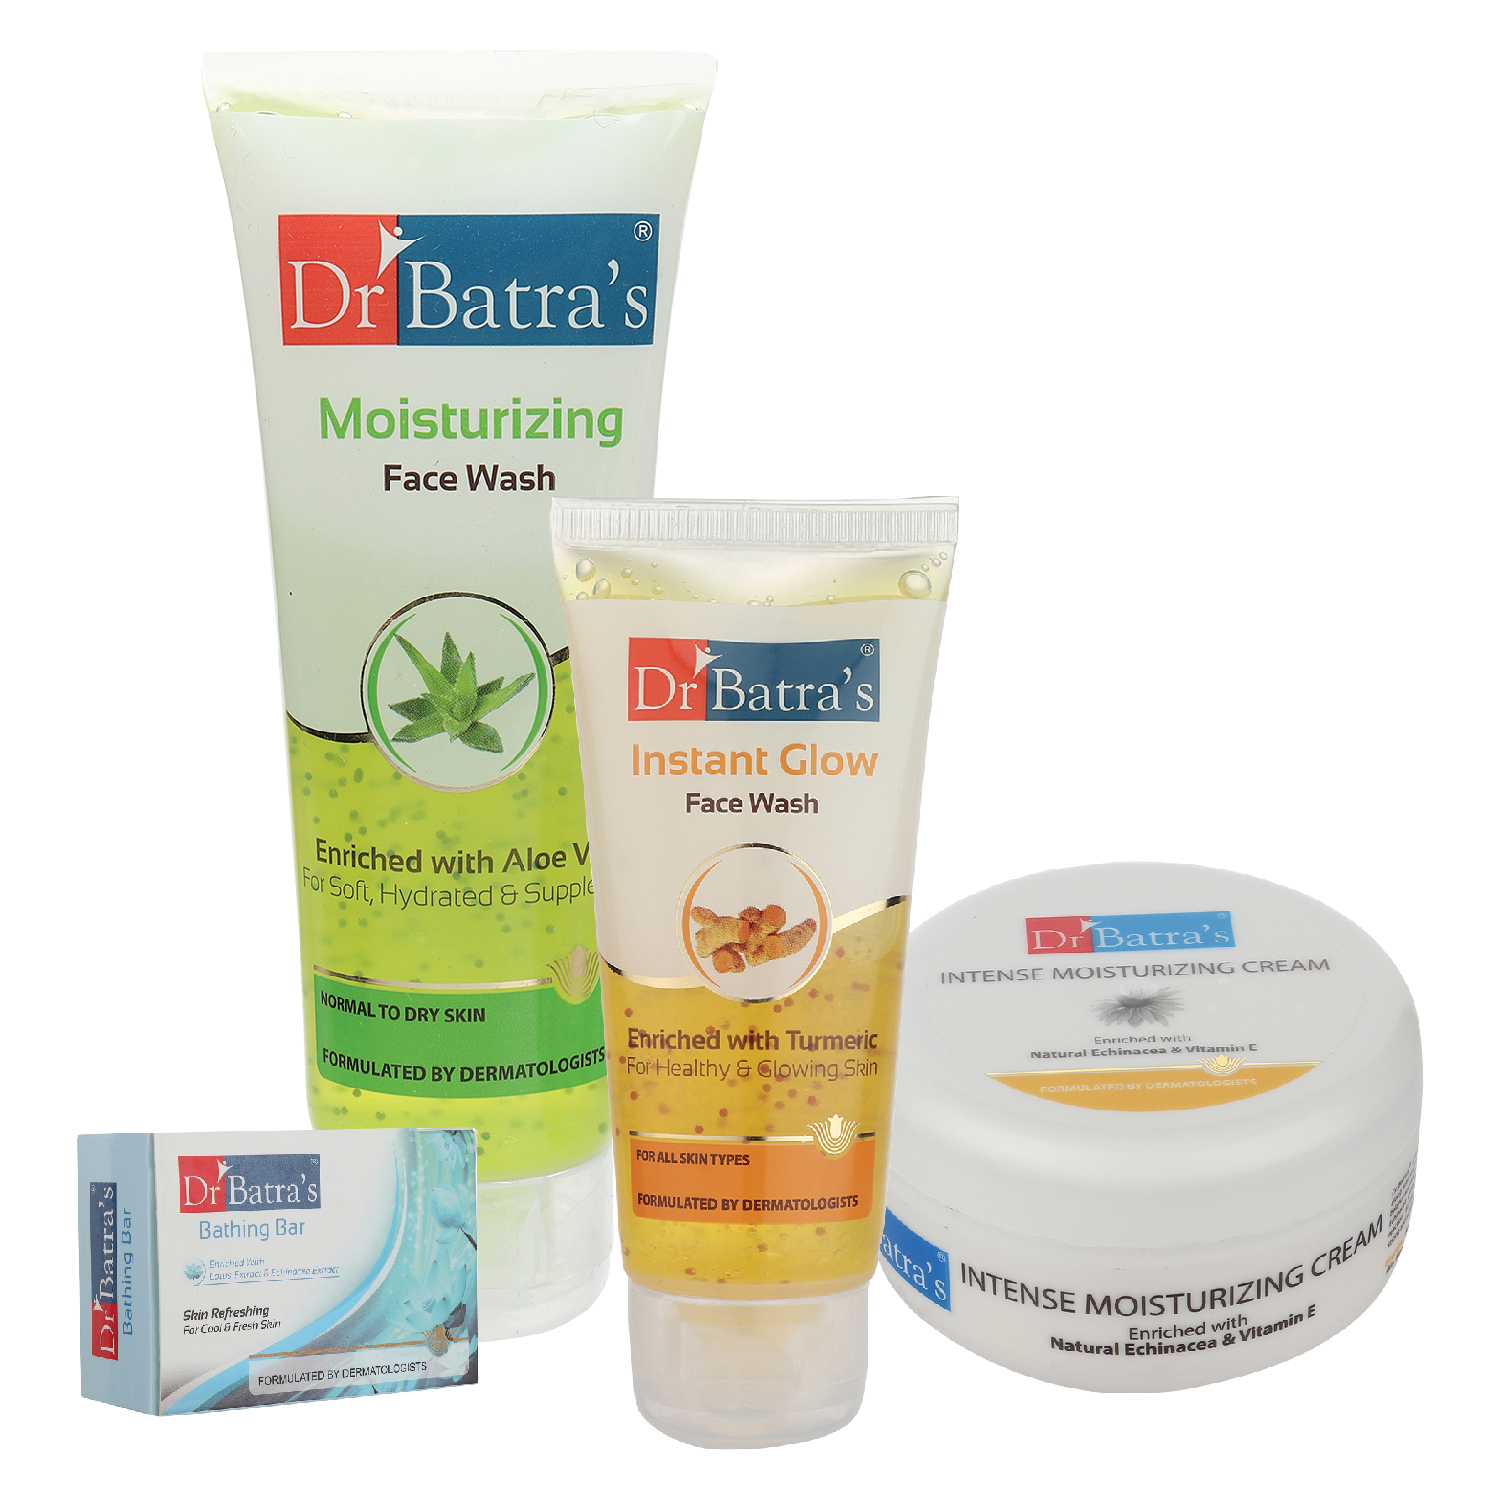 Dr Batra's | Dr Batra's Face Wash Moisturizing - 100 gm, Face Wash Instant Glow - 50 gm, Skin Refreshing Bathing Bar - 125 gm and Intense Moisturizing Cream -100 G (Pack Of 4 For Men And Women)